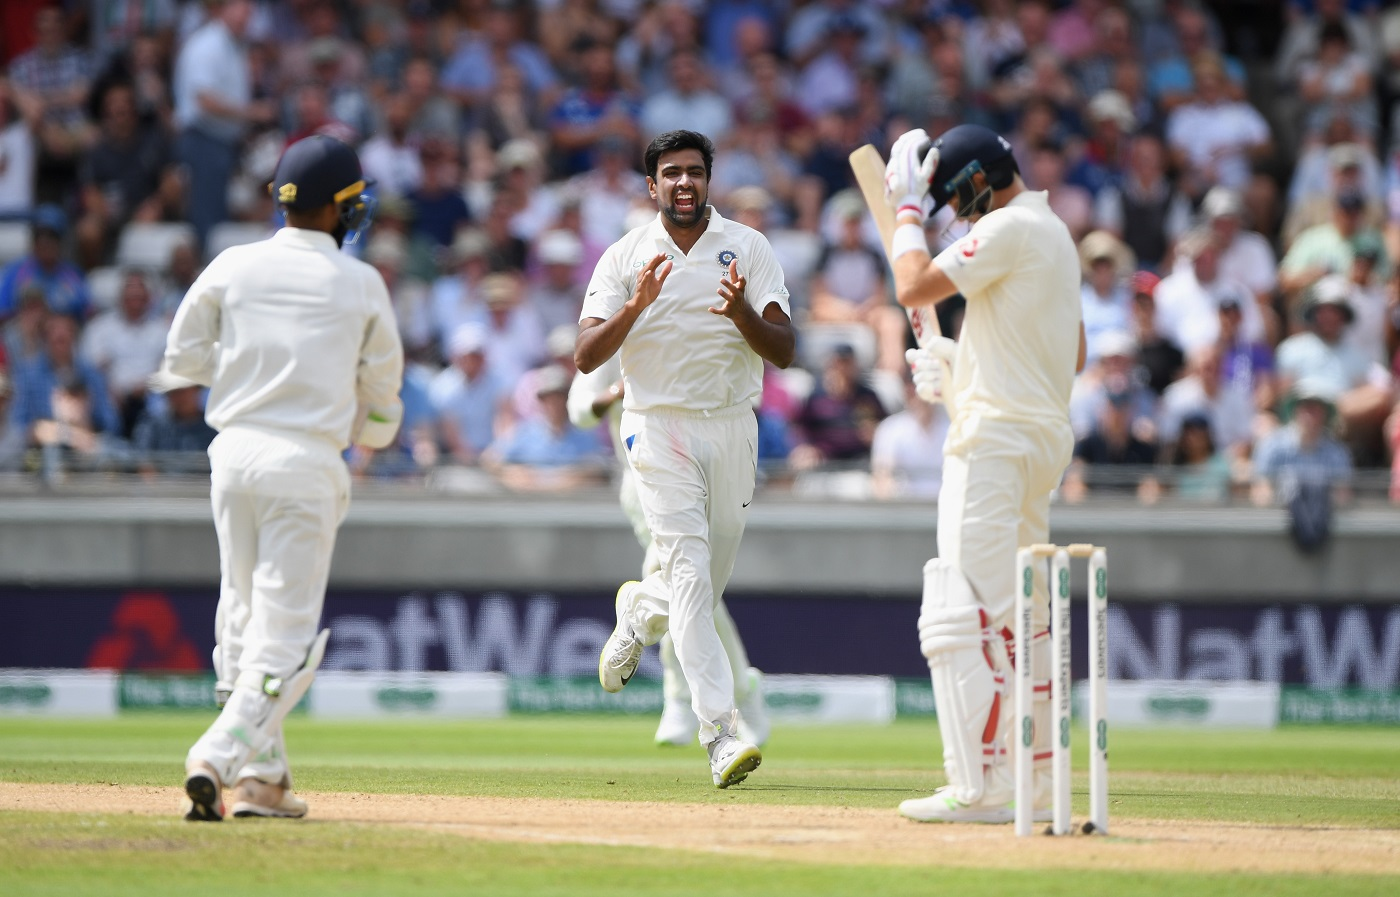 Ravichandran Ashwin is suffering from a groin injury